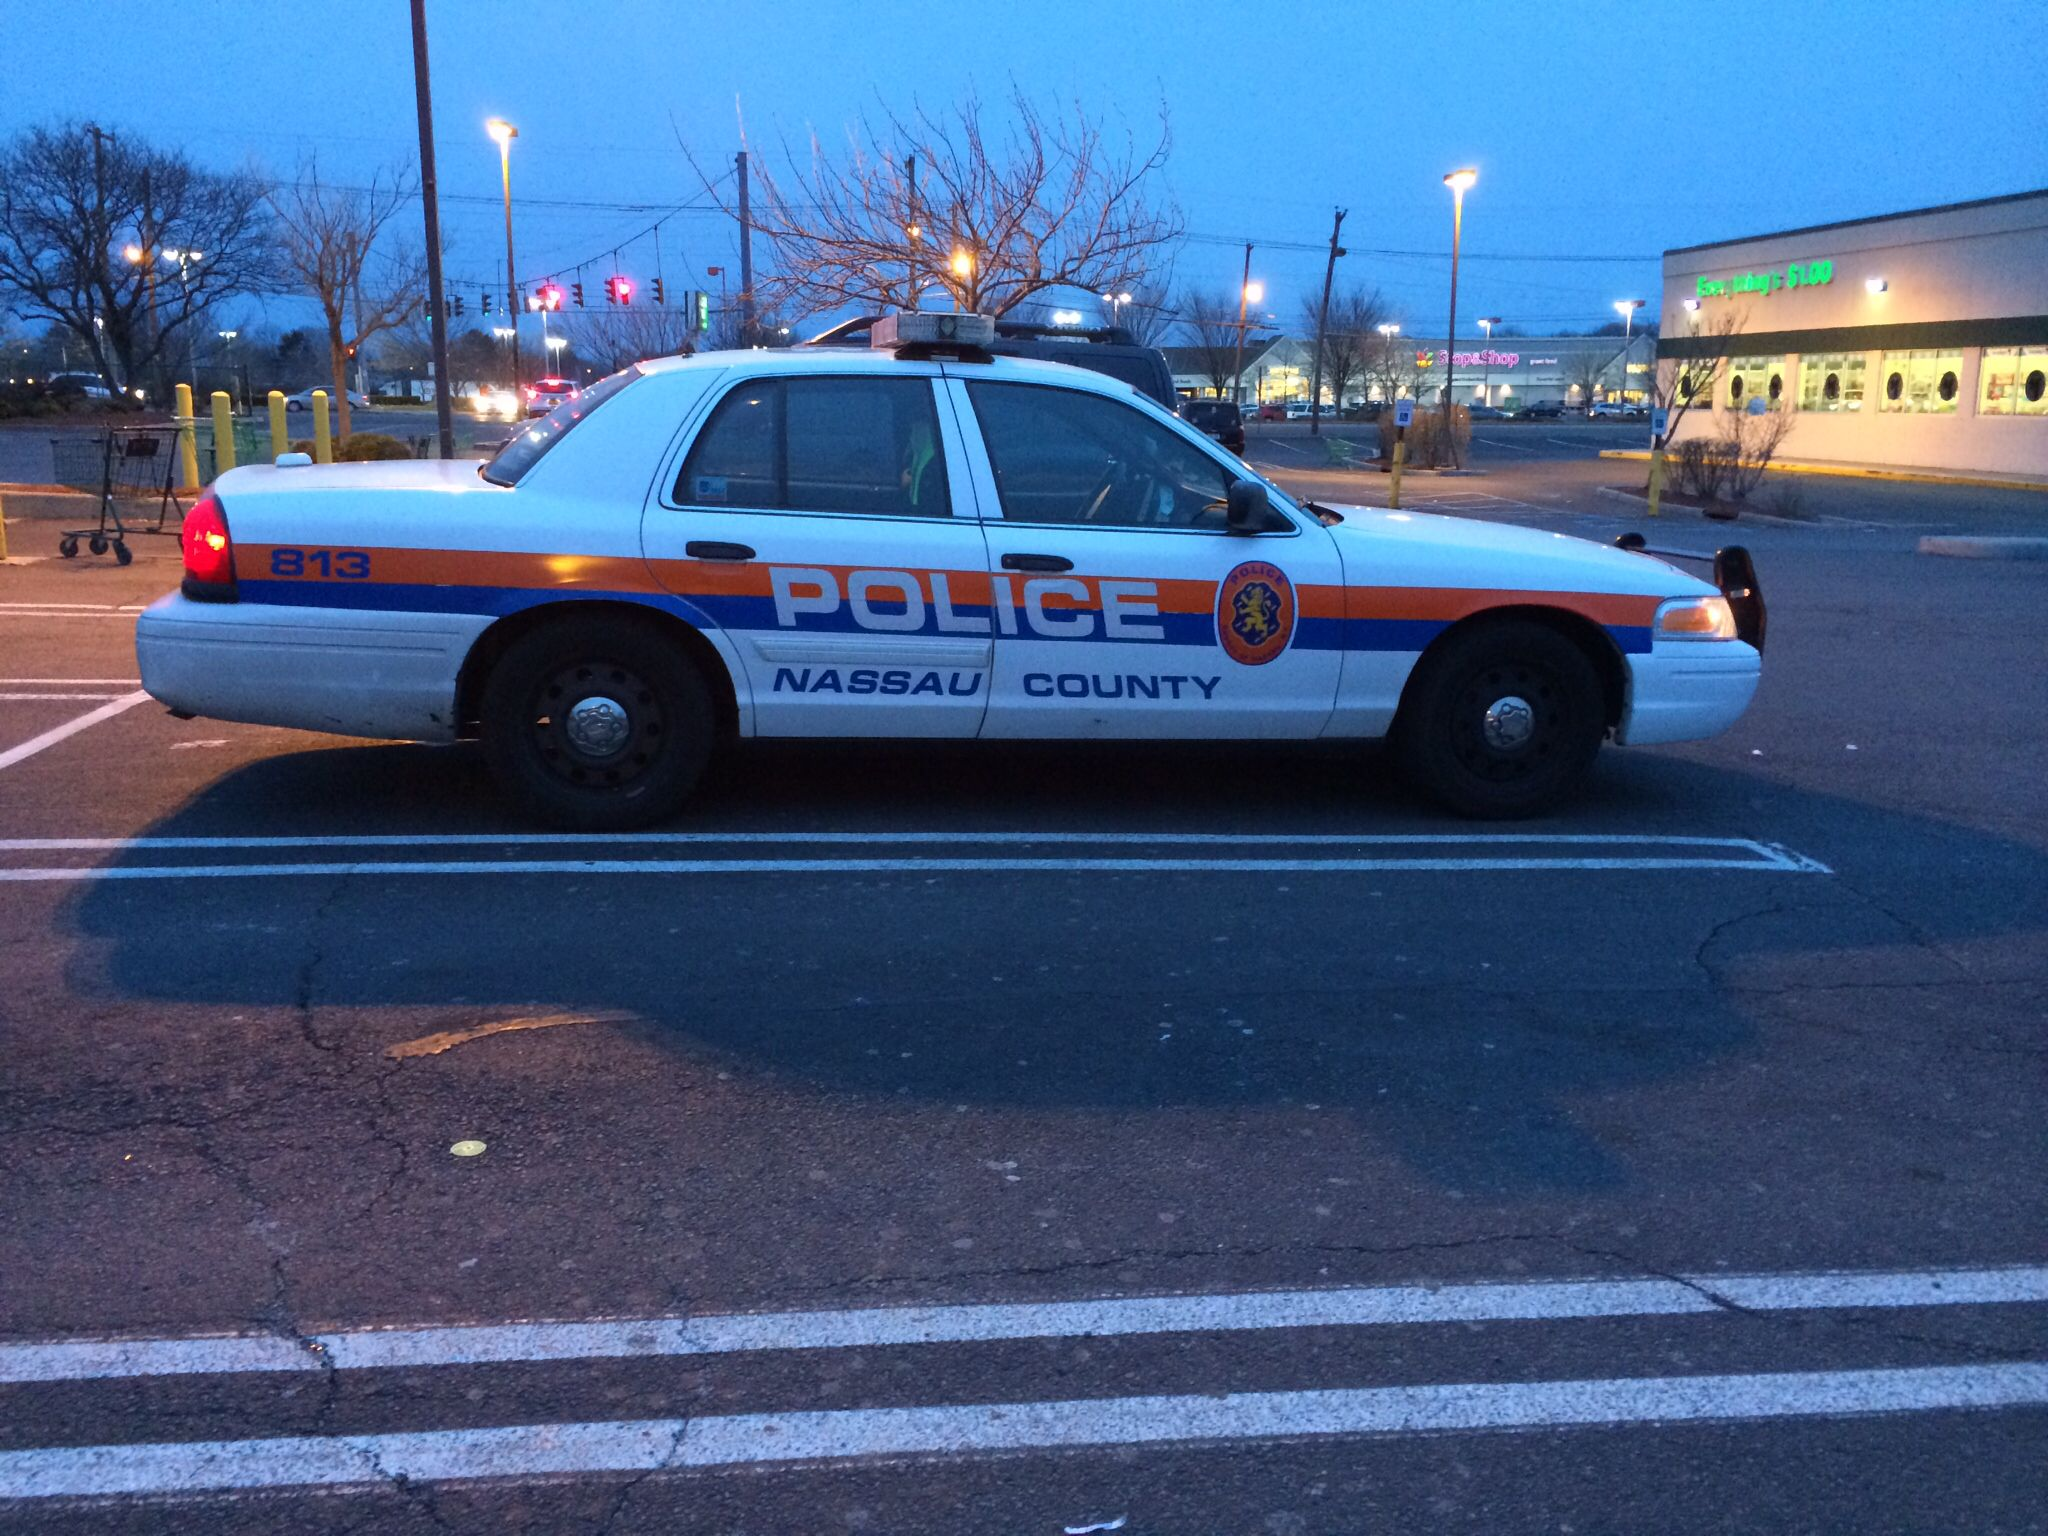 nassau county ny police cruiser police vehicles pinterest nassau county police cars and. Black Bedroom Furniture Sets. Home Design Ideas